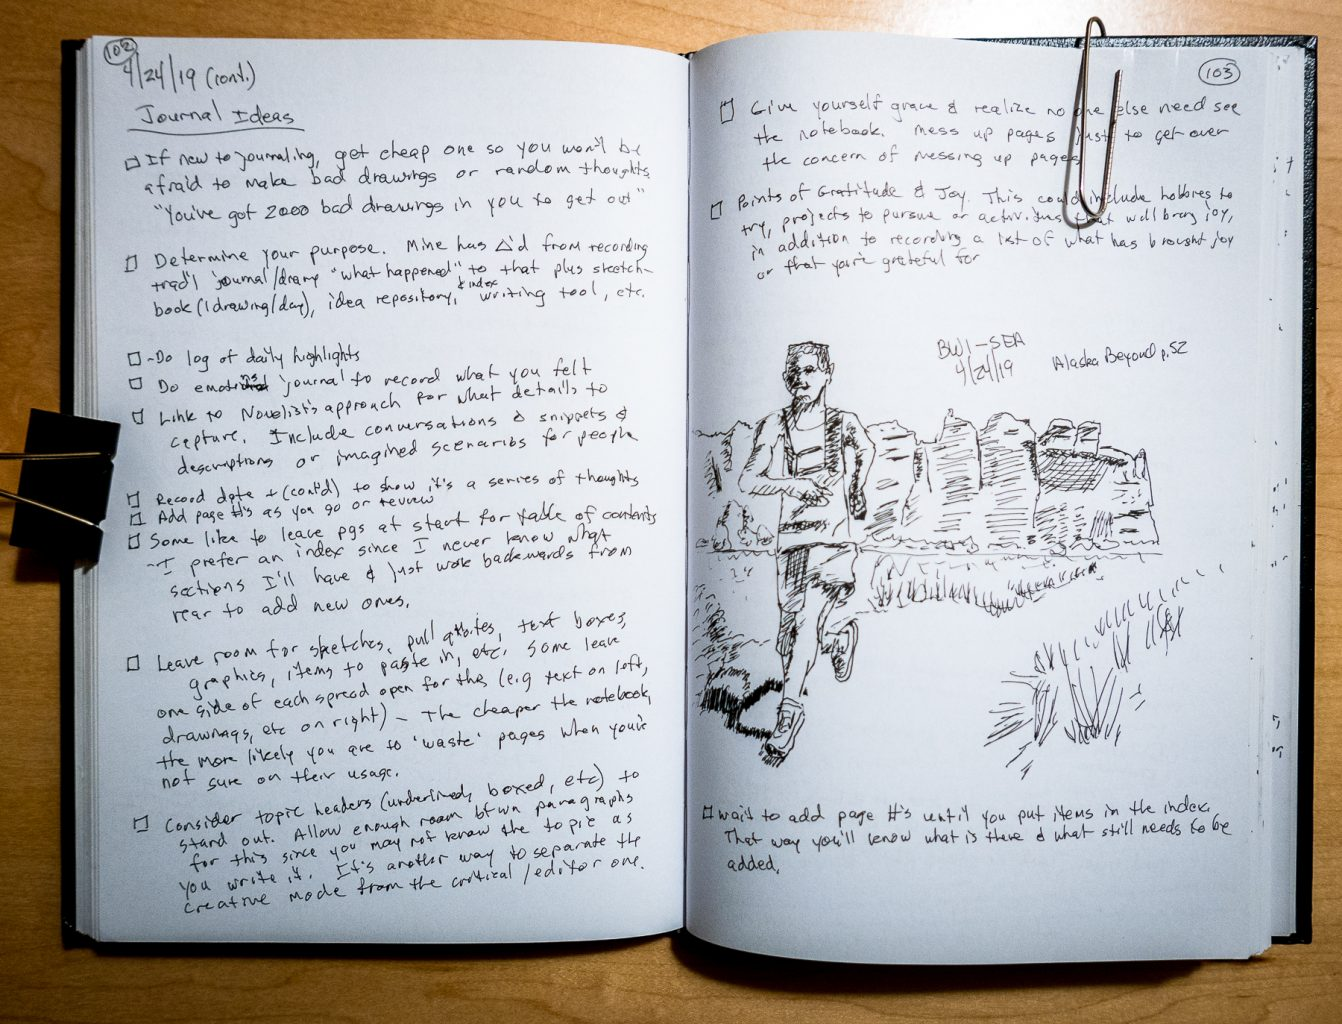 Daily entry journal